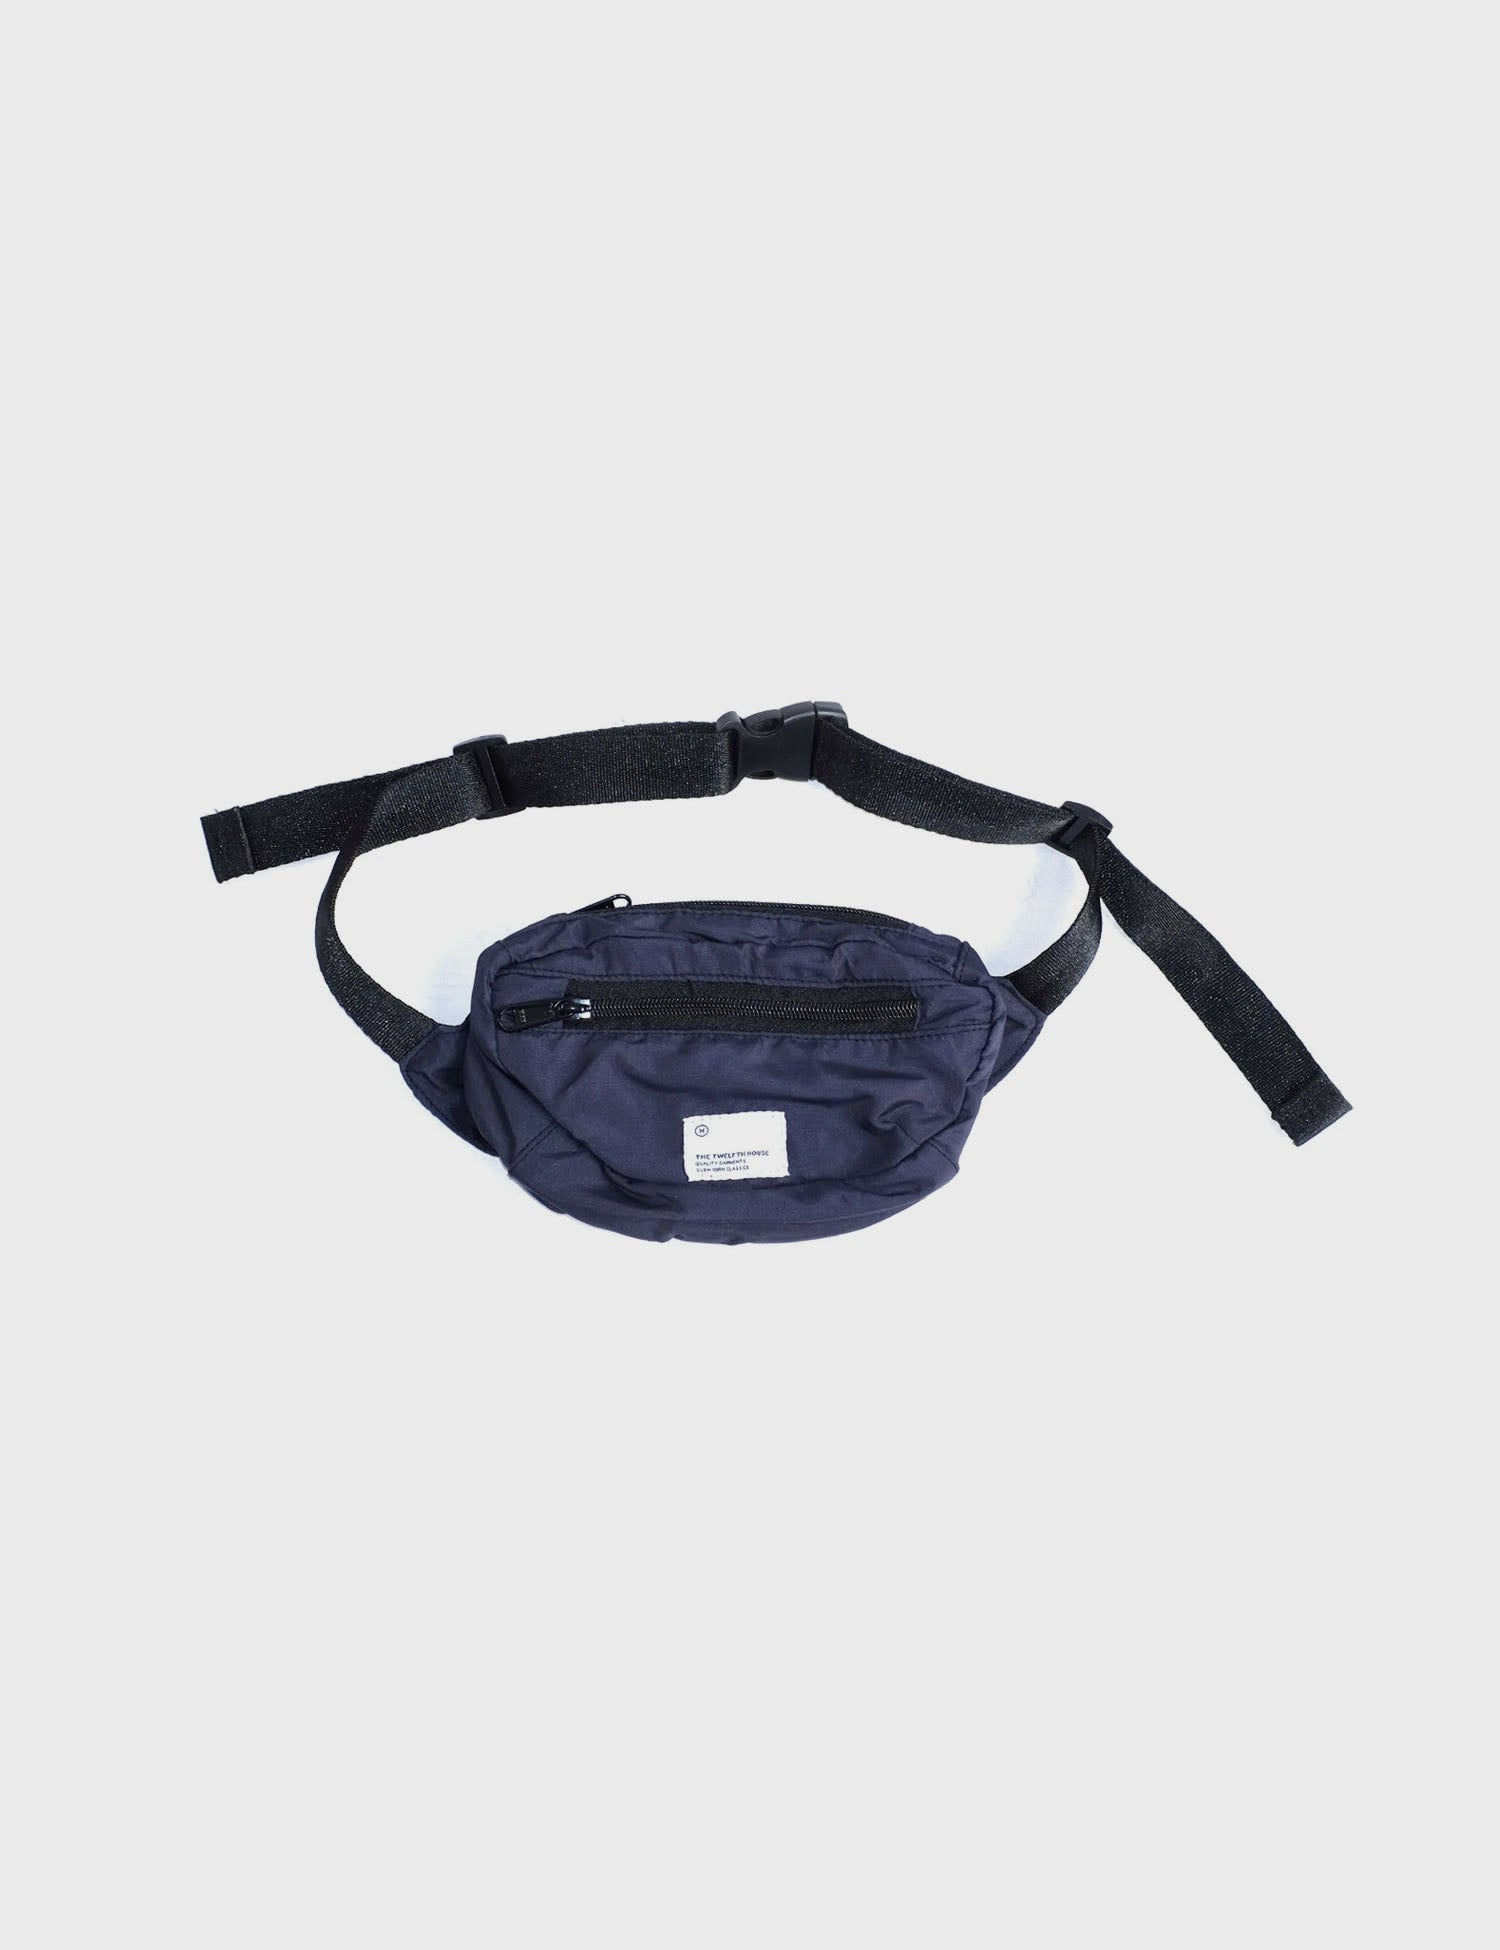 products/12H-wp-small-navy.jpg